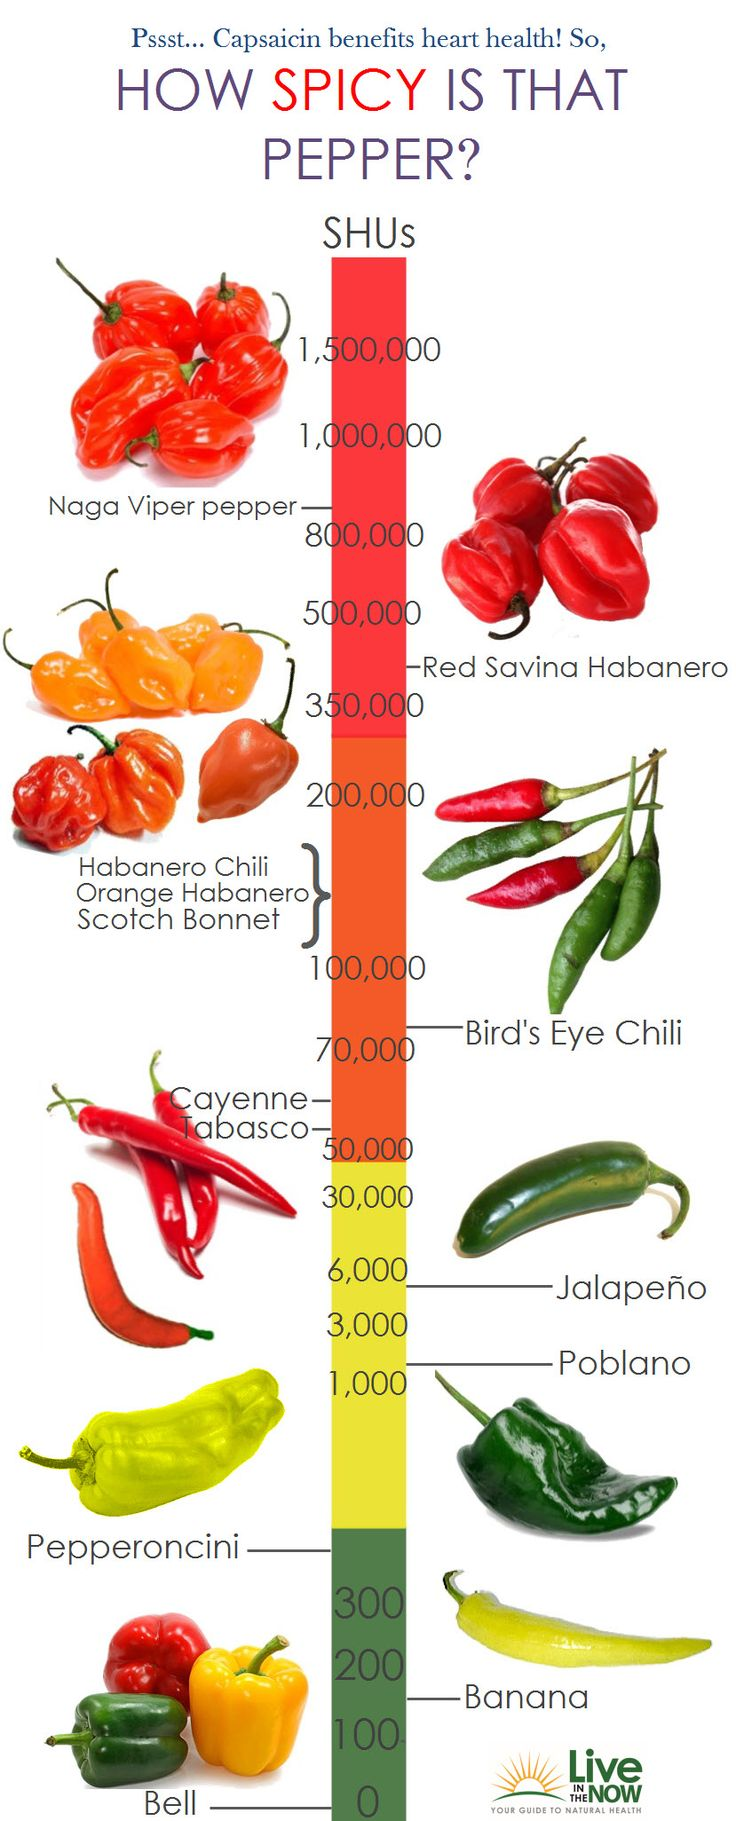 Because of my love of spicy foods - How Spicy Is That Pepper